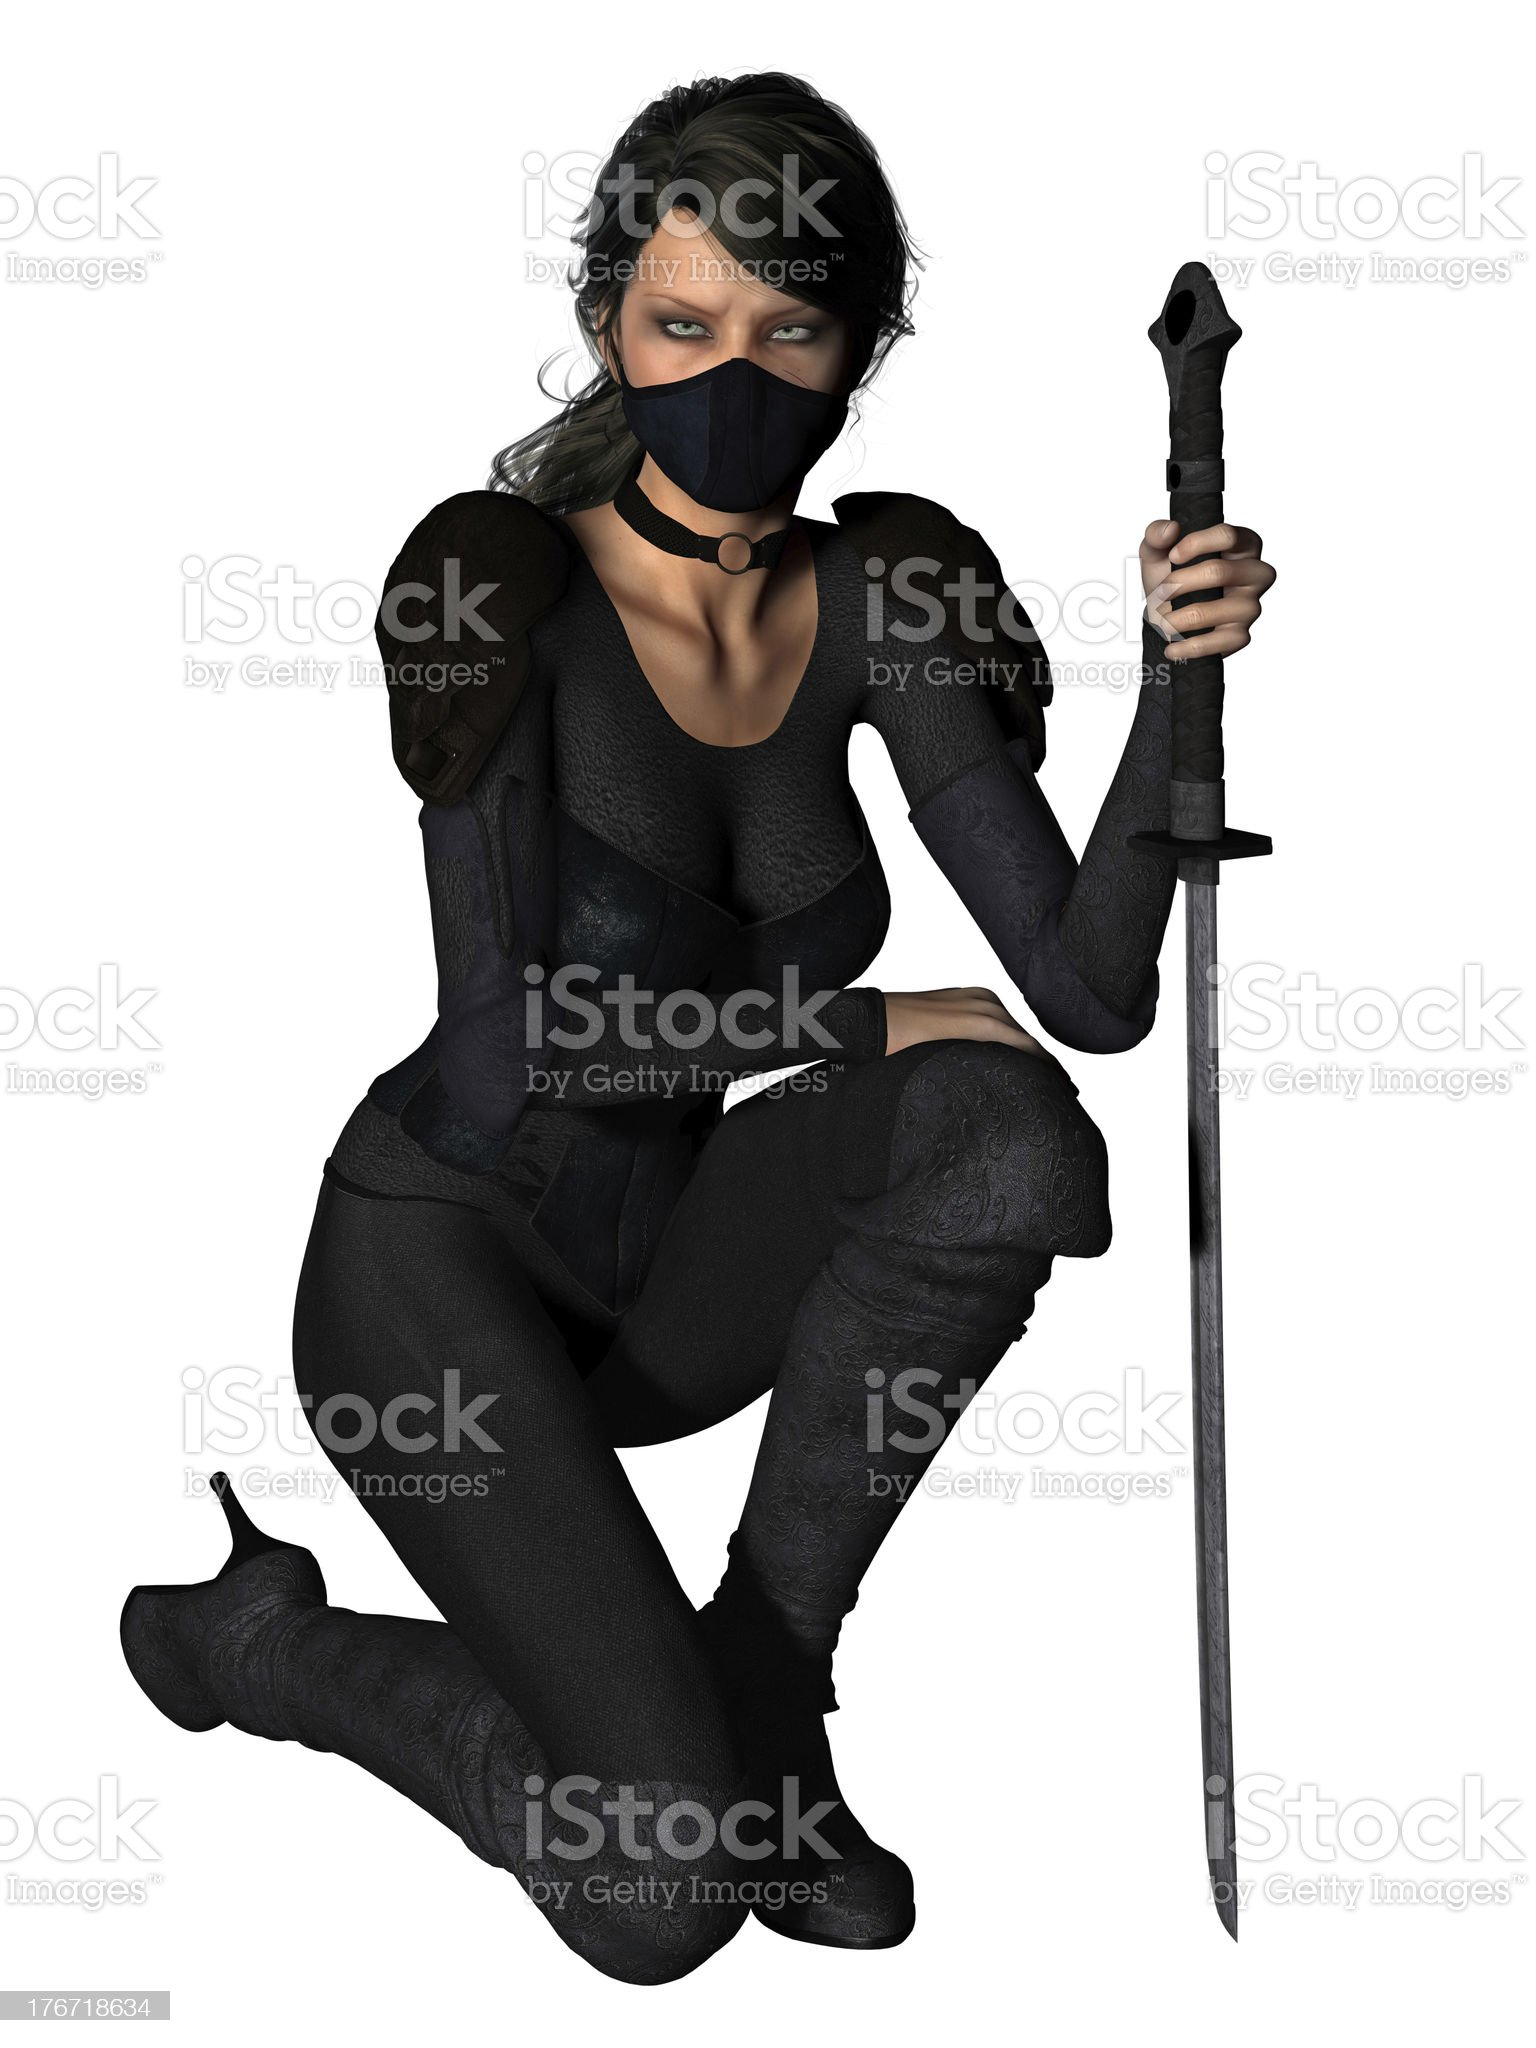 bujinkan royalty-free stock photo